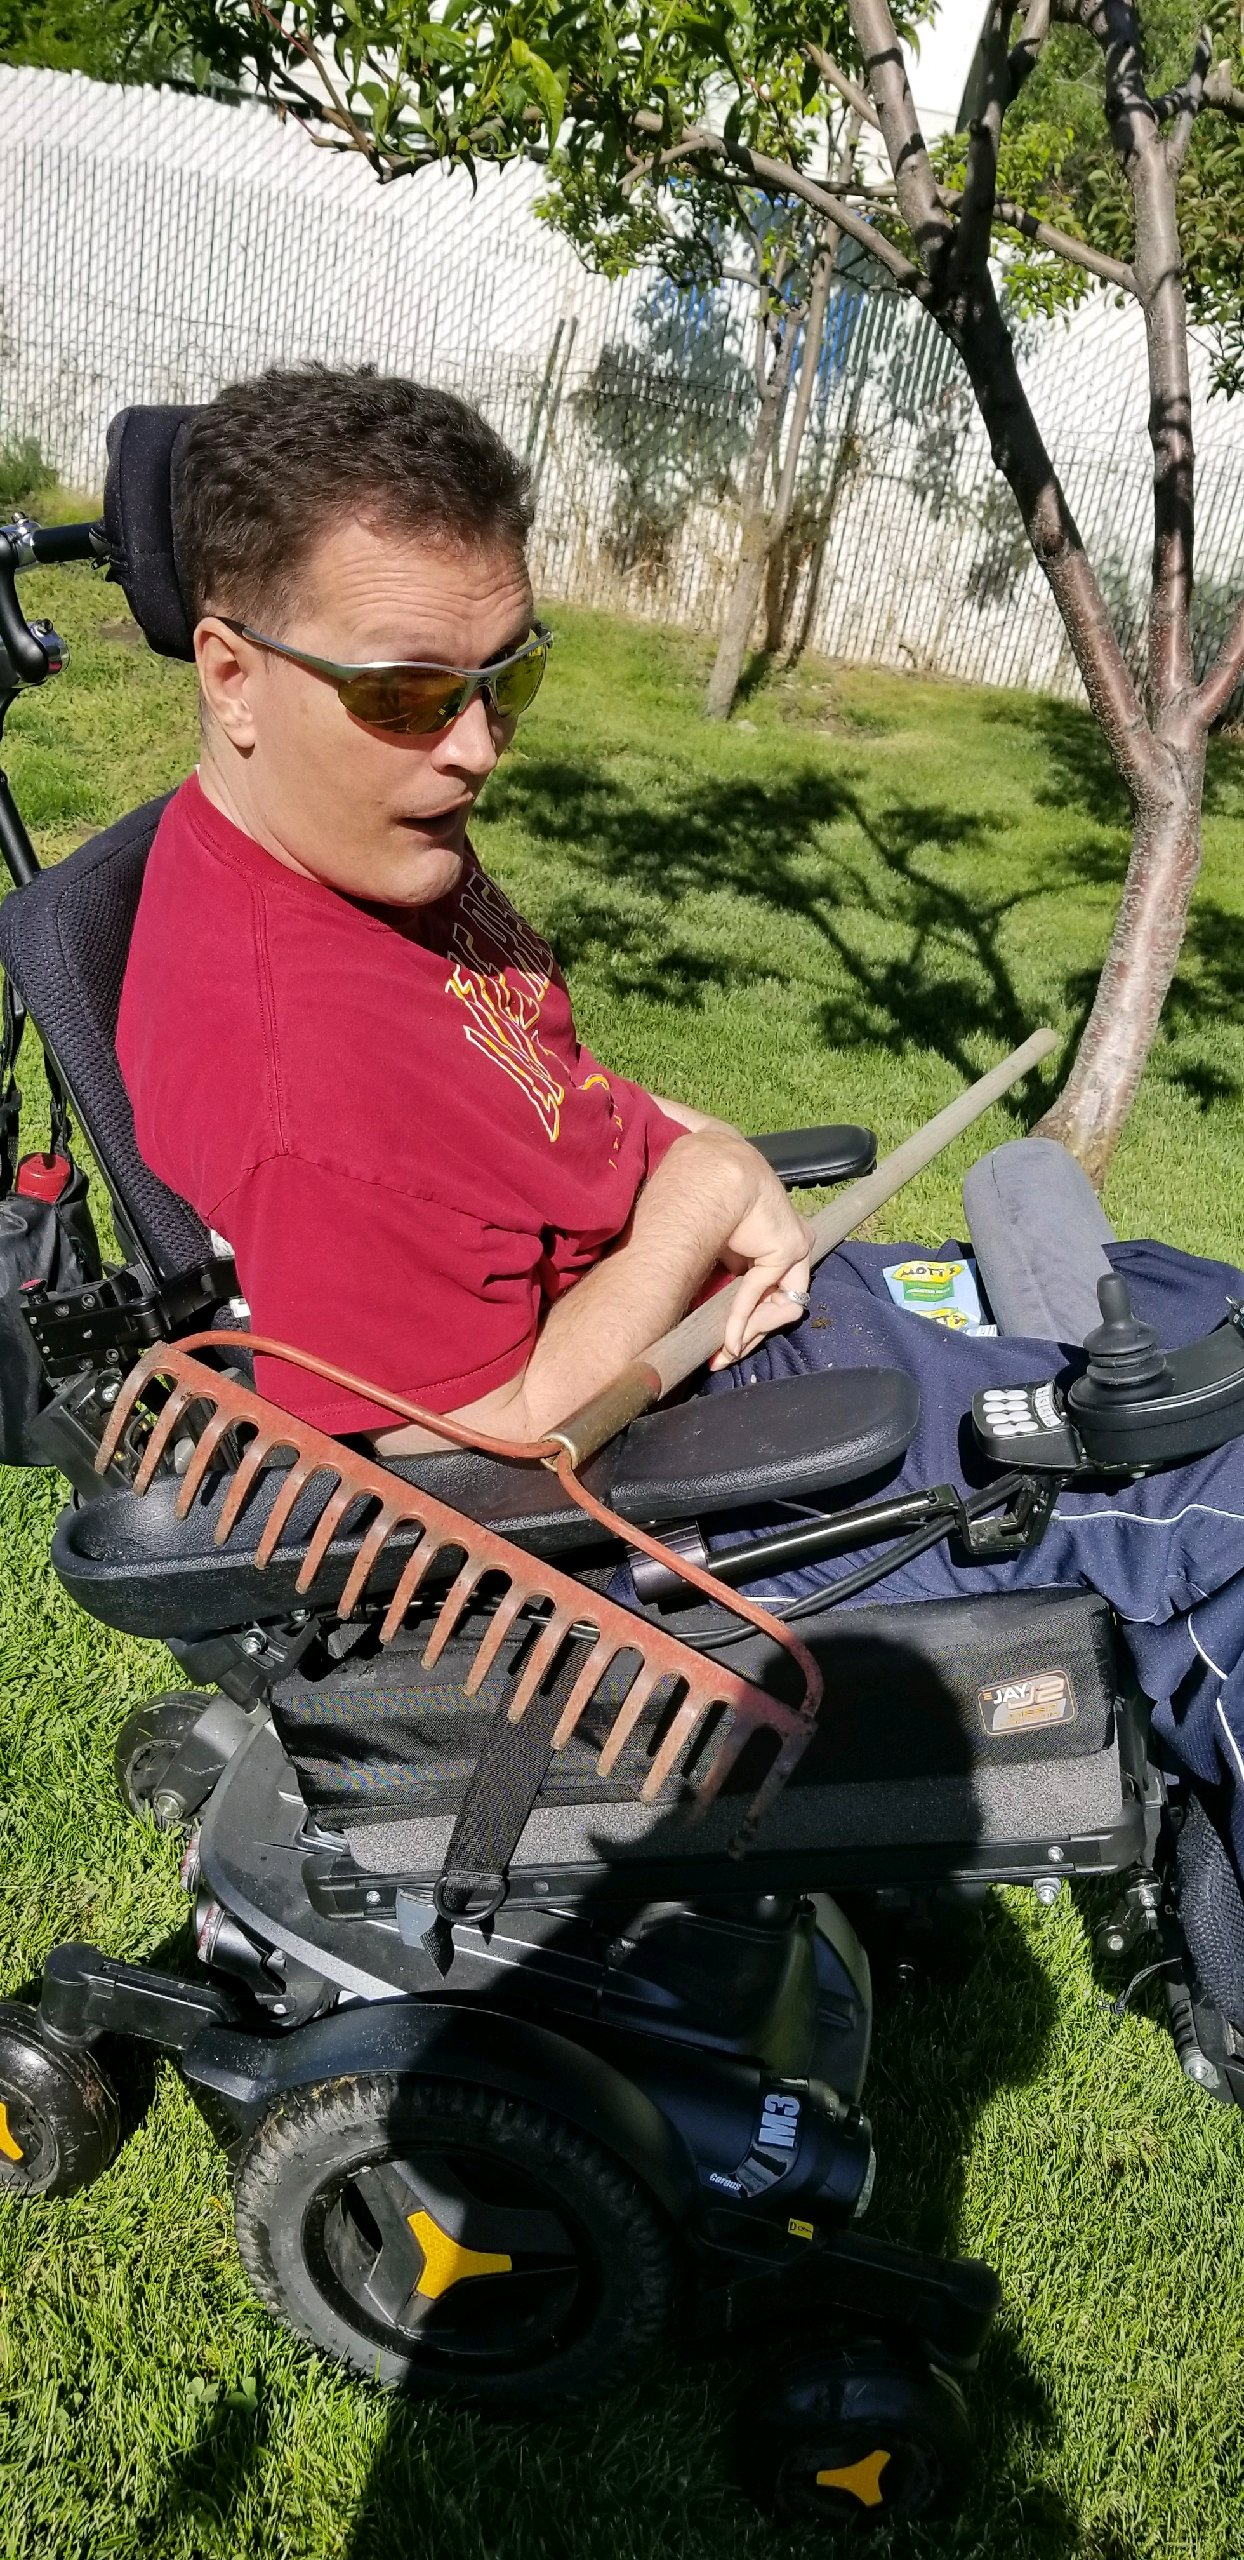 Orin Voorheis takes a rake to work in the garden. More than 20 years after being shot in the head on his mission, Voorheis is living a happy life surrounded by family and friends.